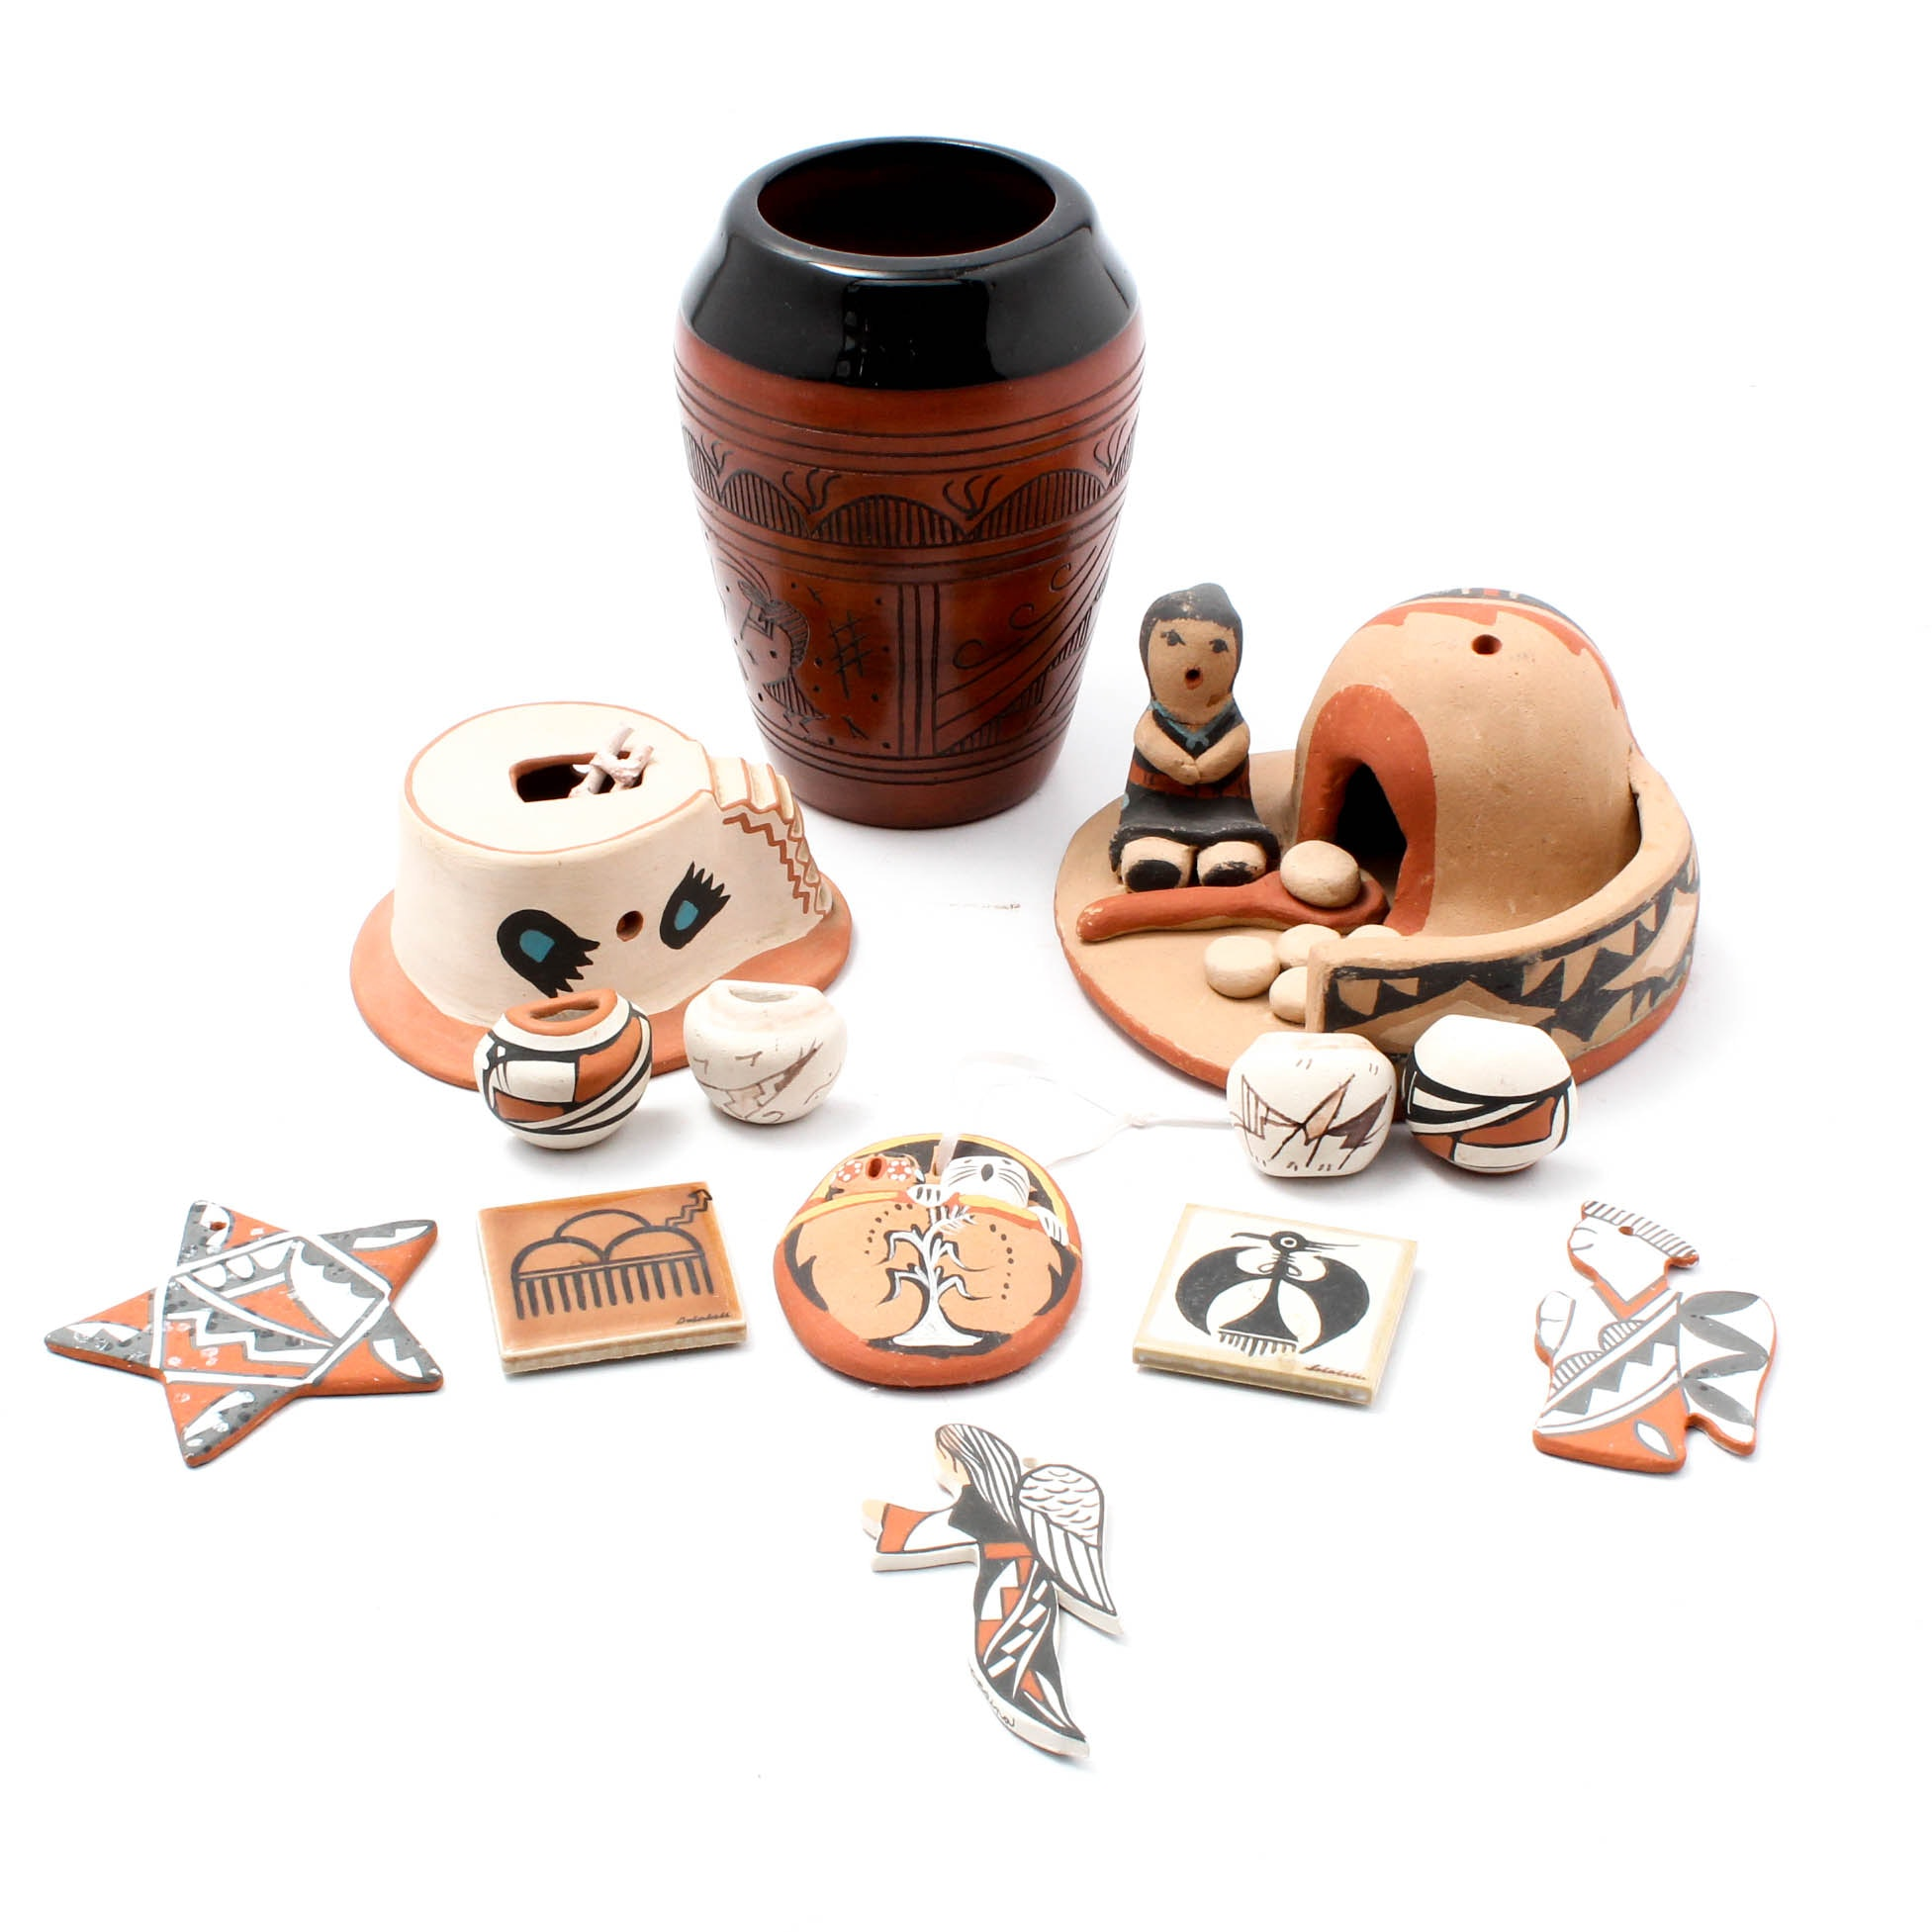 Native American Ceramics Featuring Jemez and Navajo Pottery